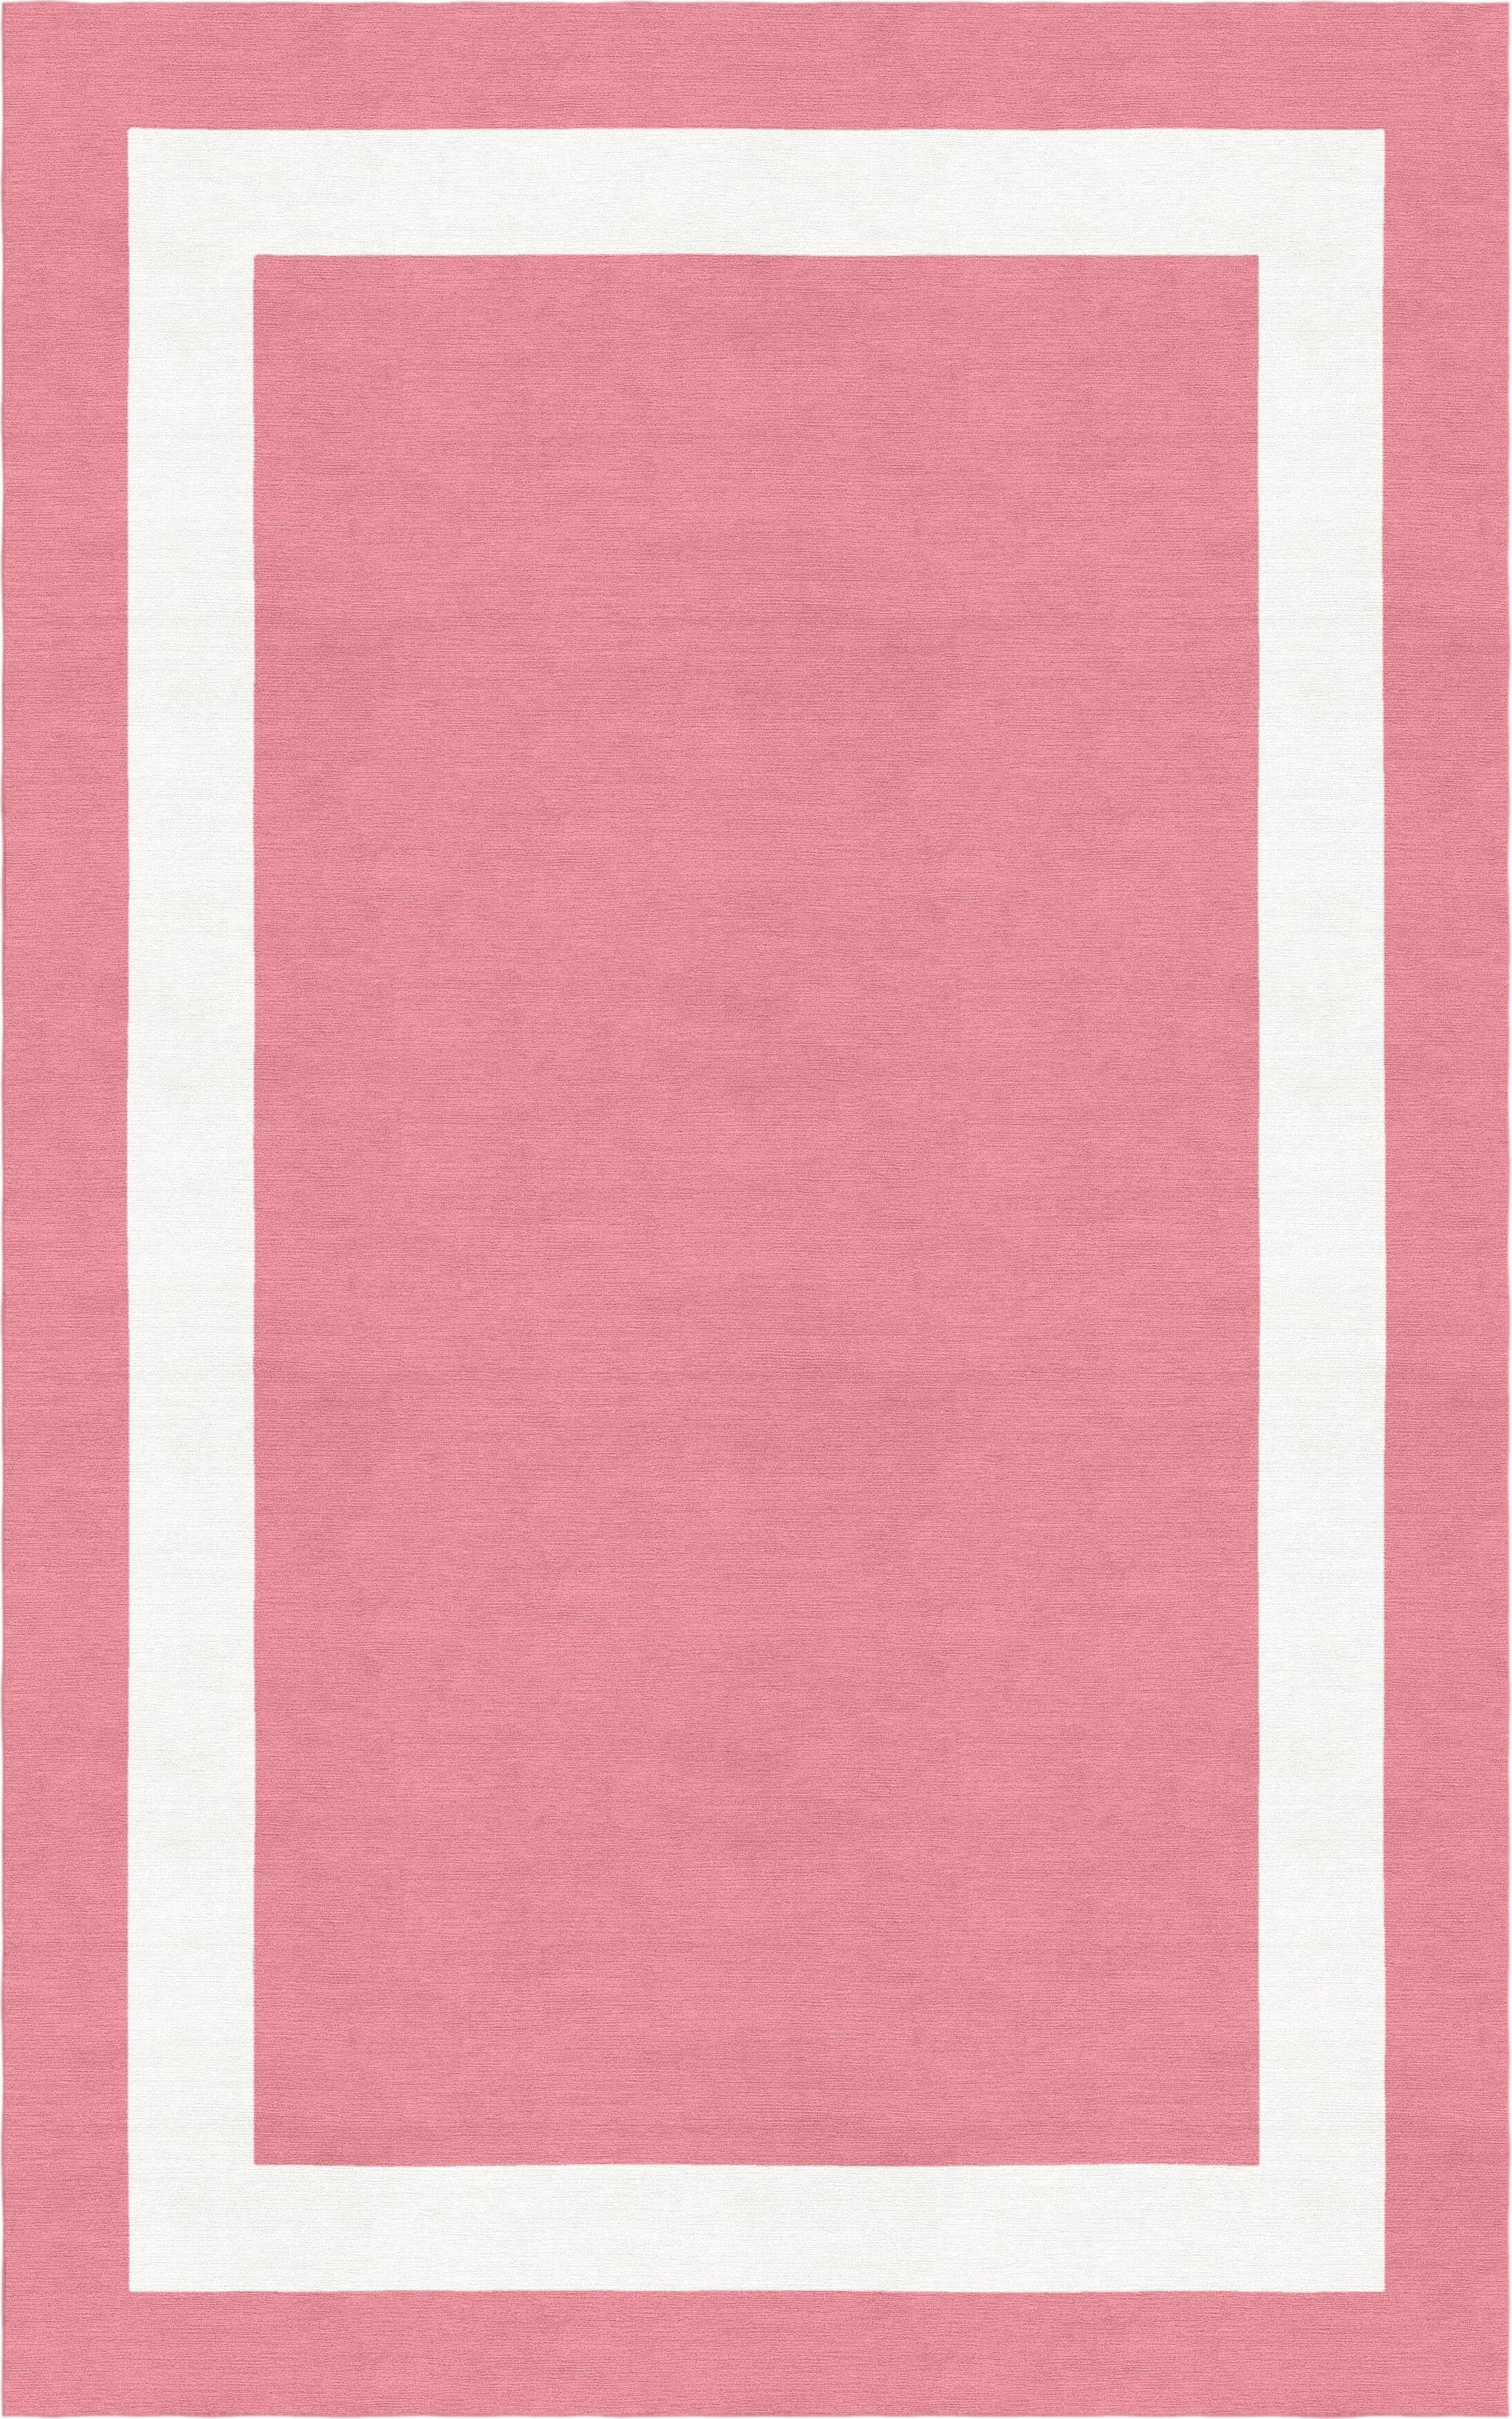 Weidel Border Hand-Tufted Wool Pink/White Area Rug Rug Size: Rectangle 5' x 8'